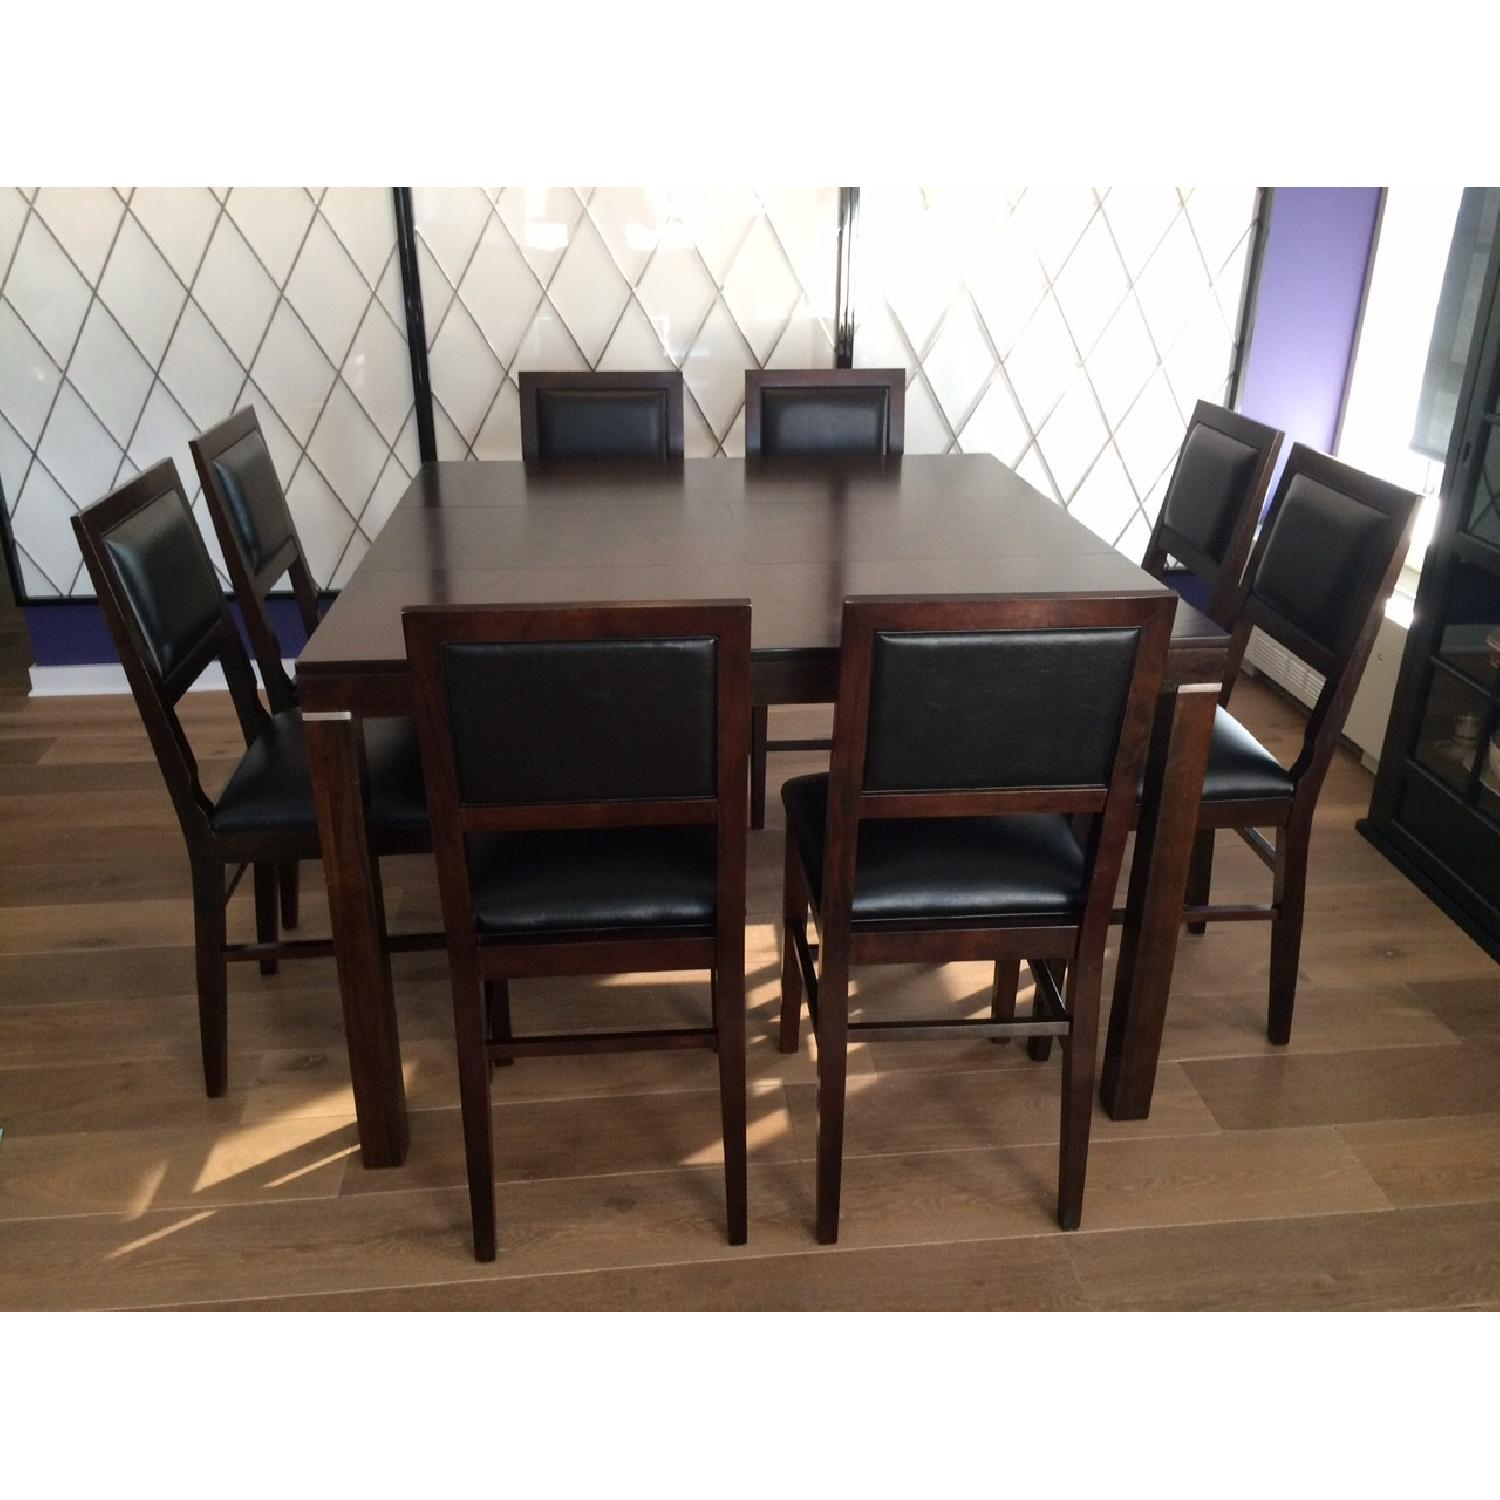 Fortunoff Dining Table w/ 8 Chairs - image-1